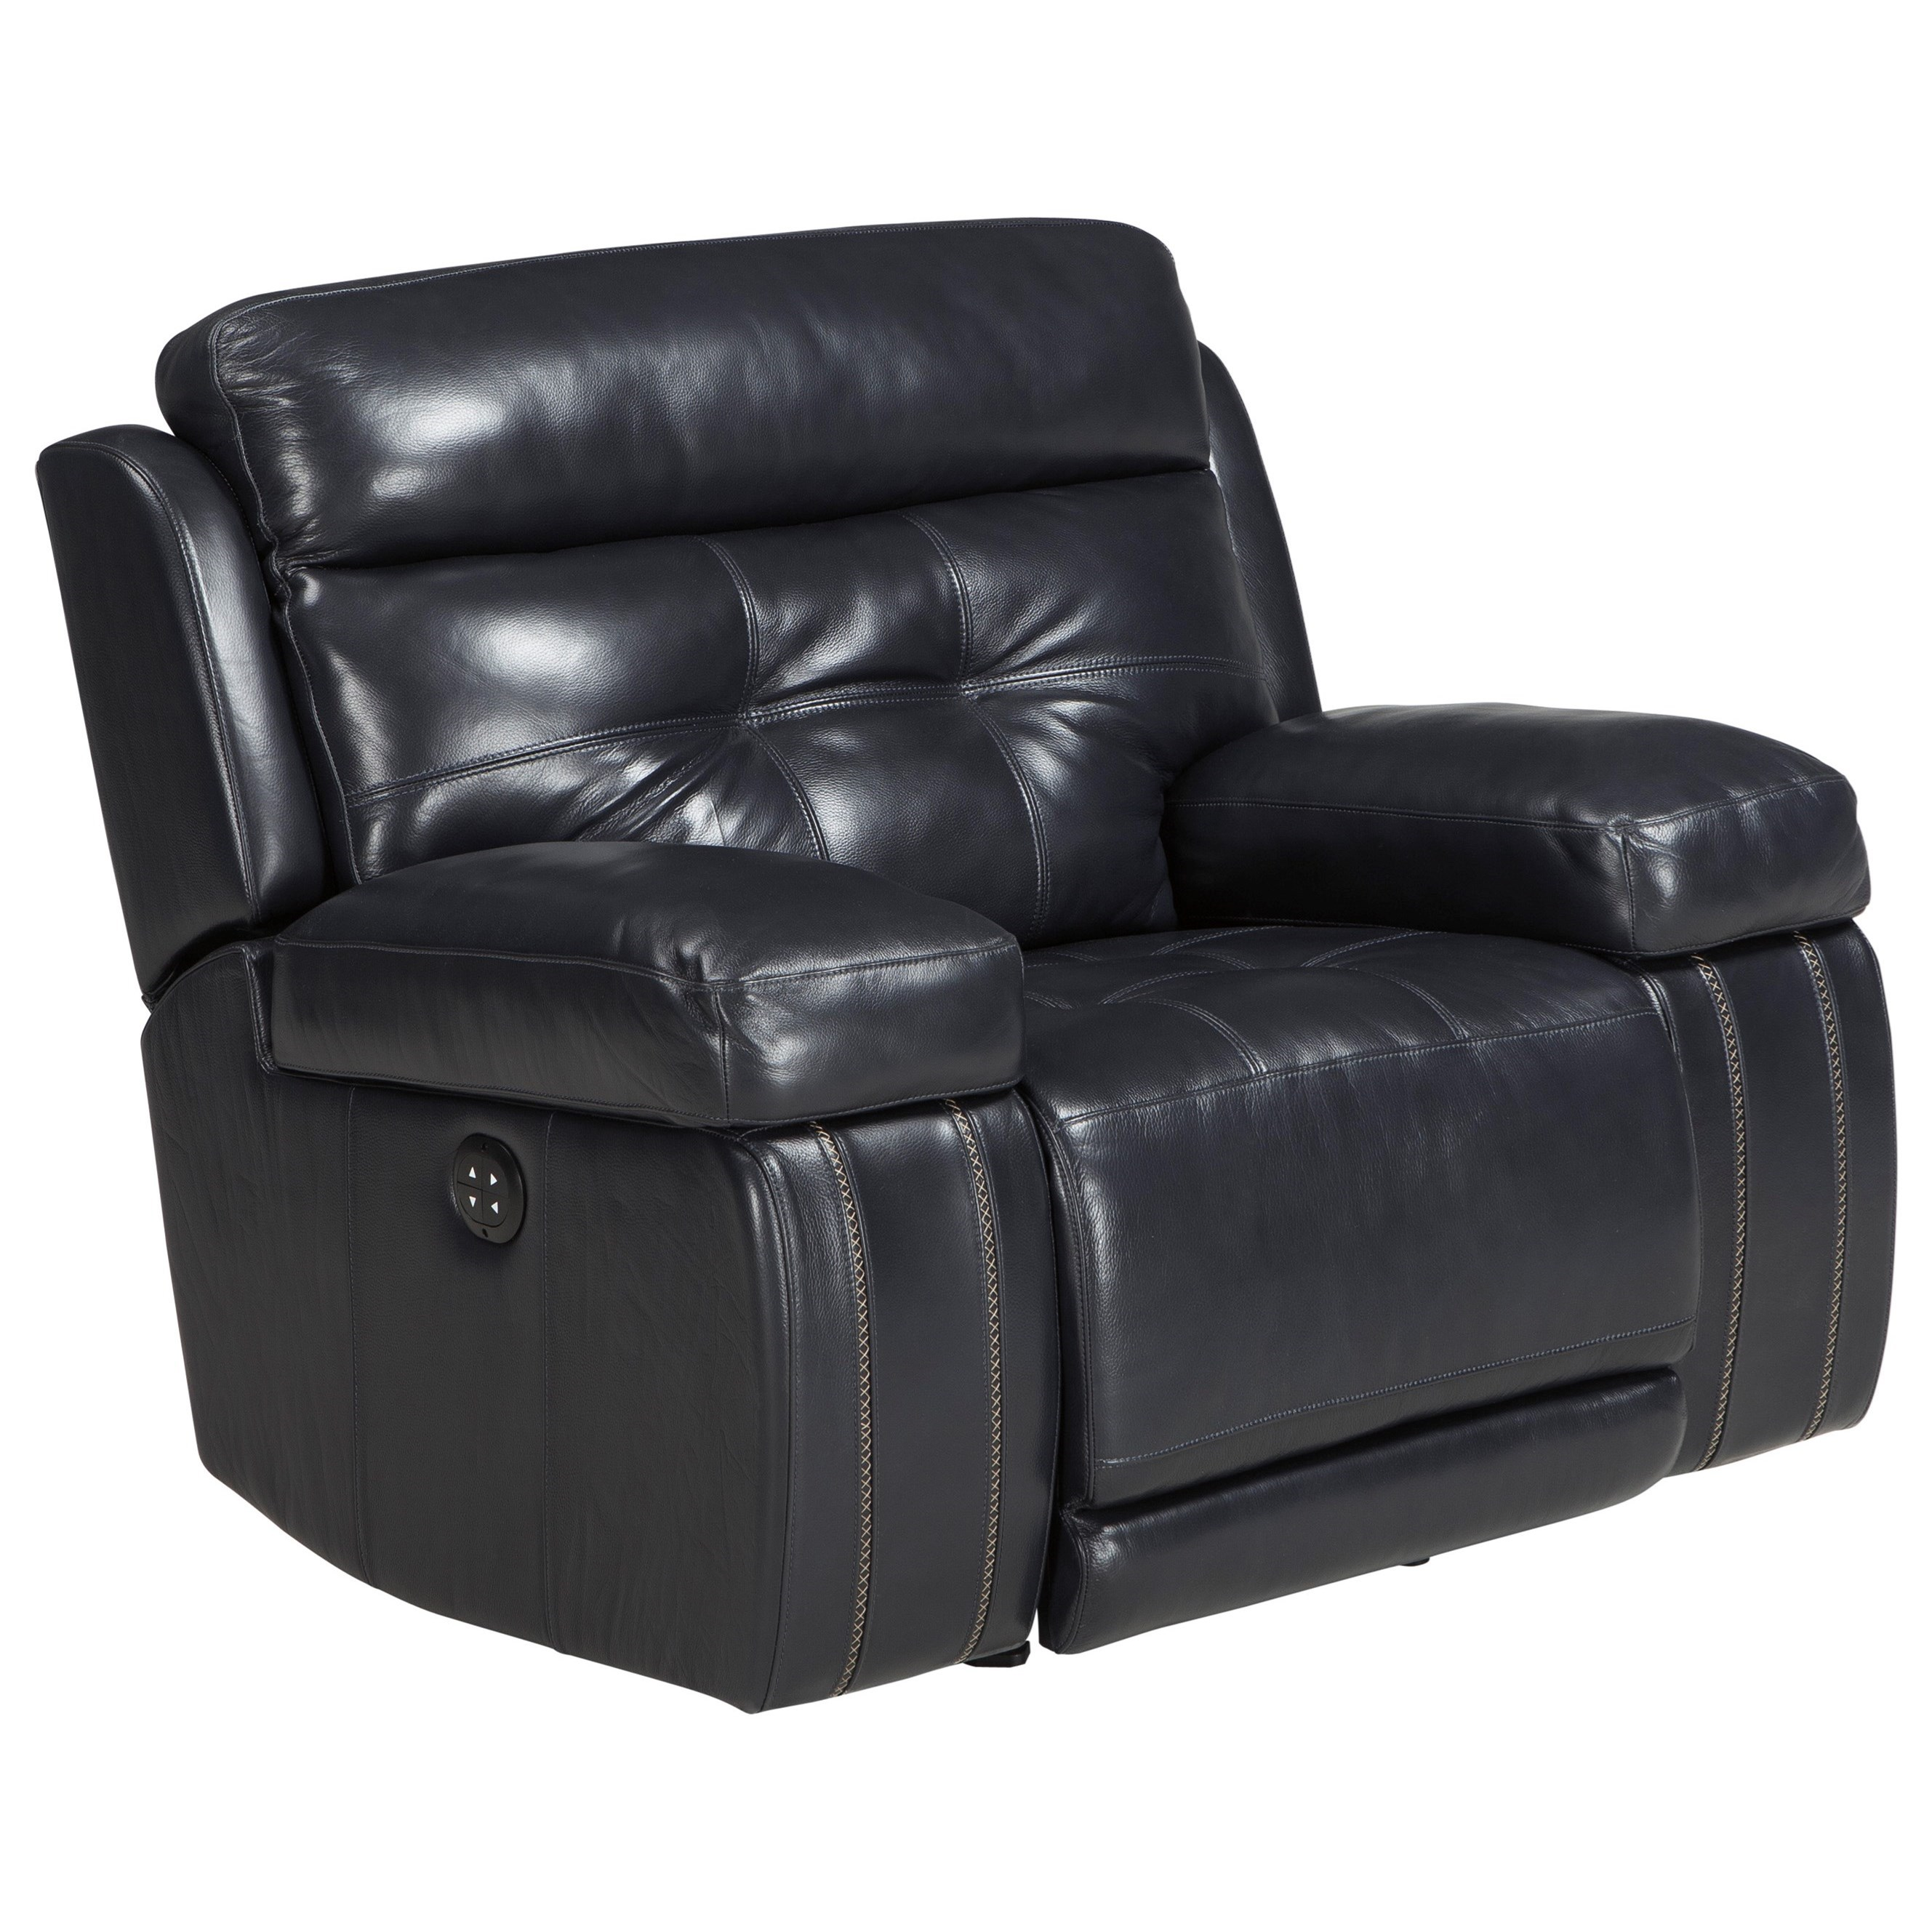 Signature Design by Ashley Graford Power Recliner with Adjustable Headrest - Item Number: 6470313